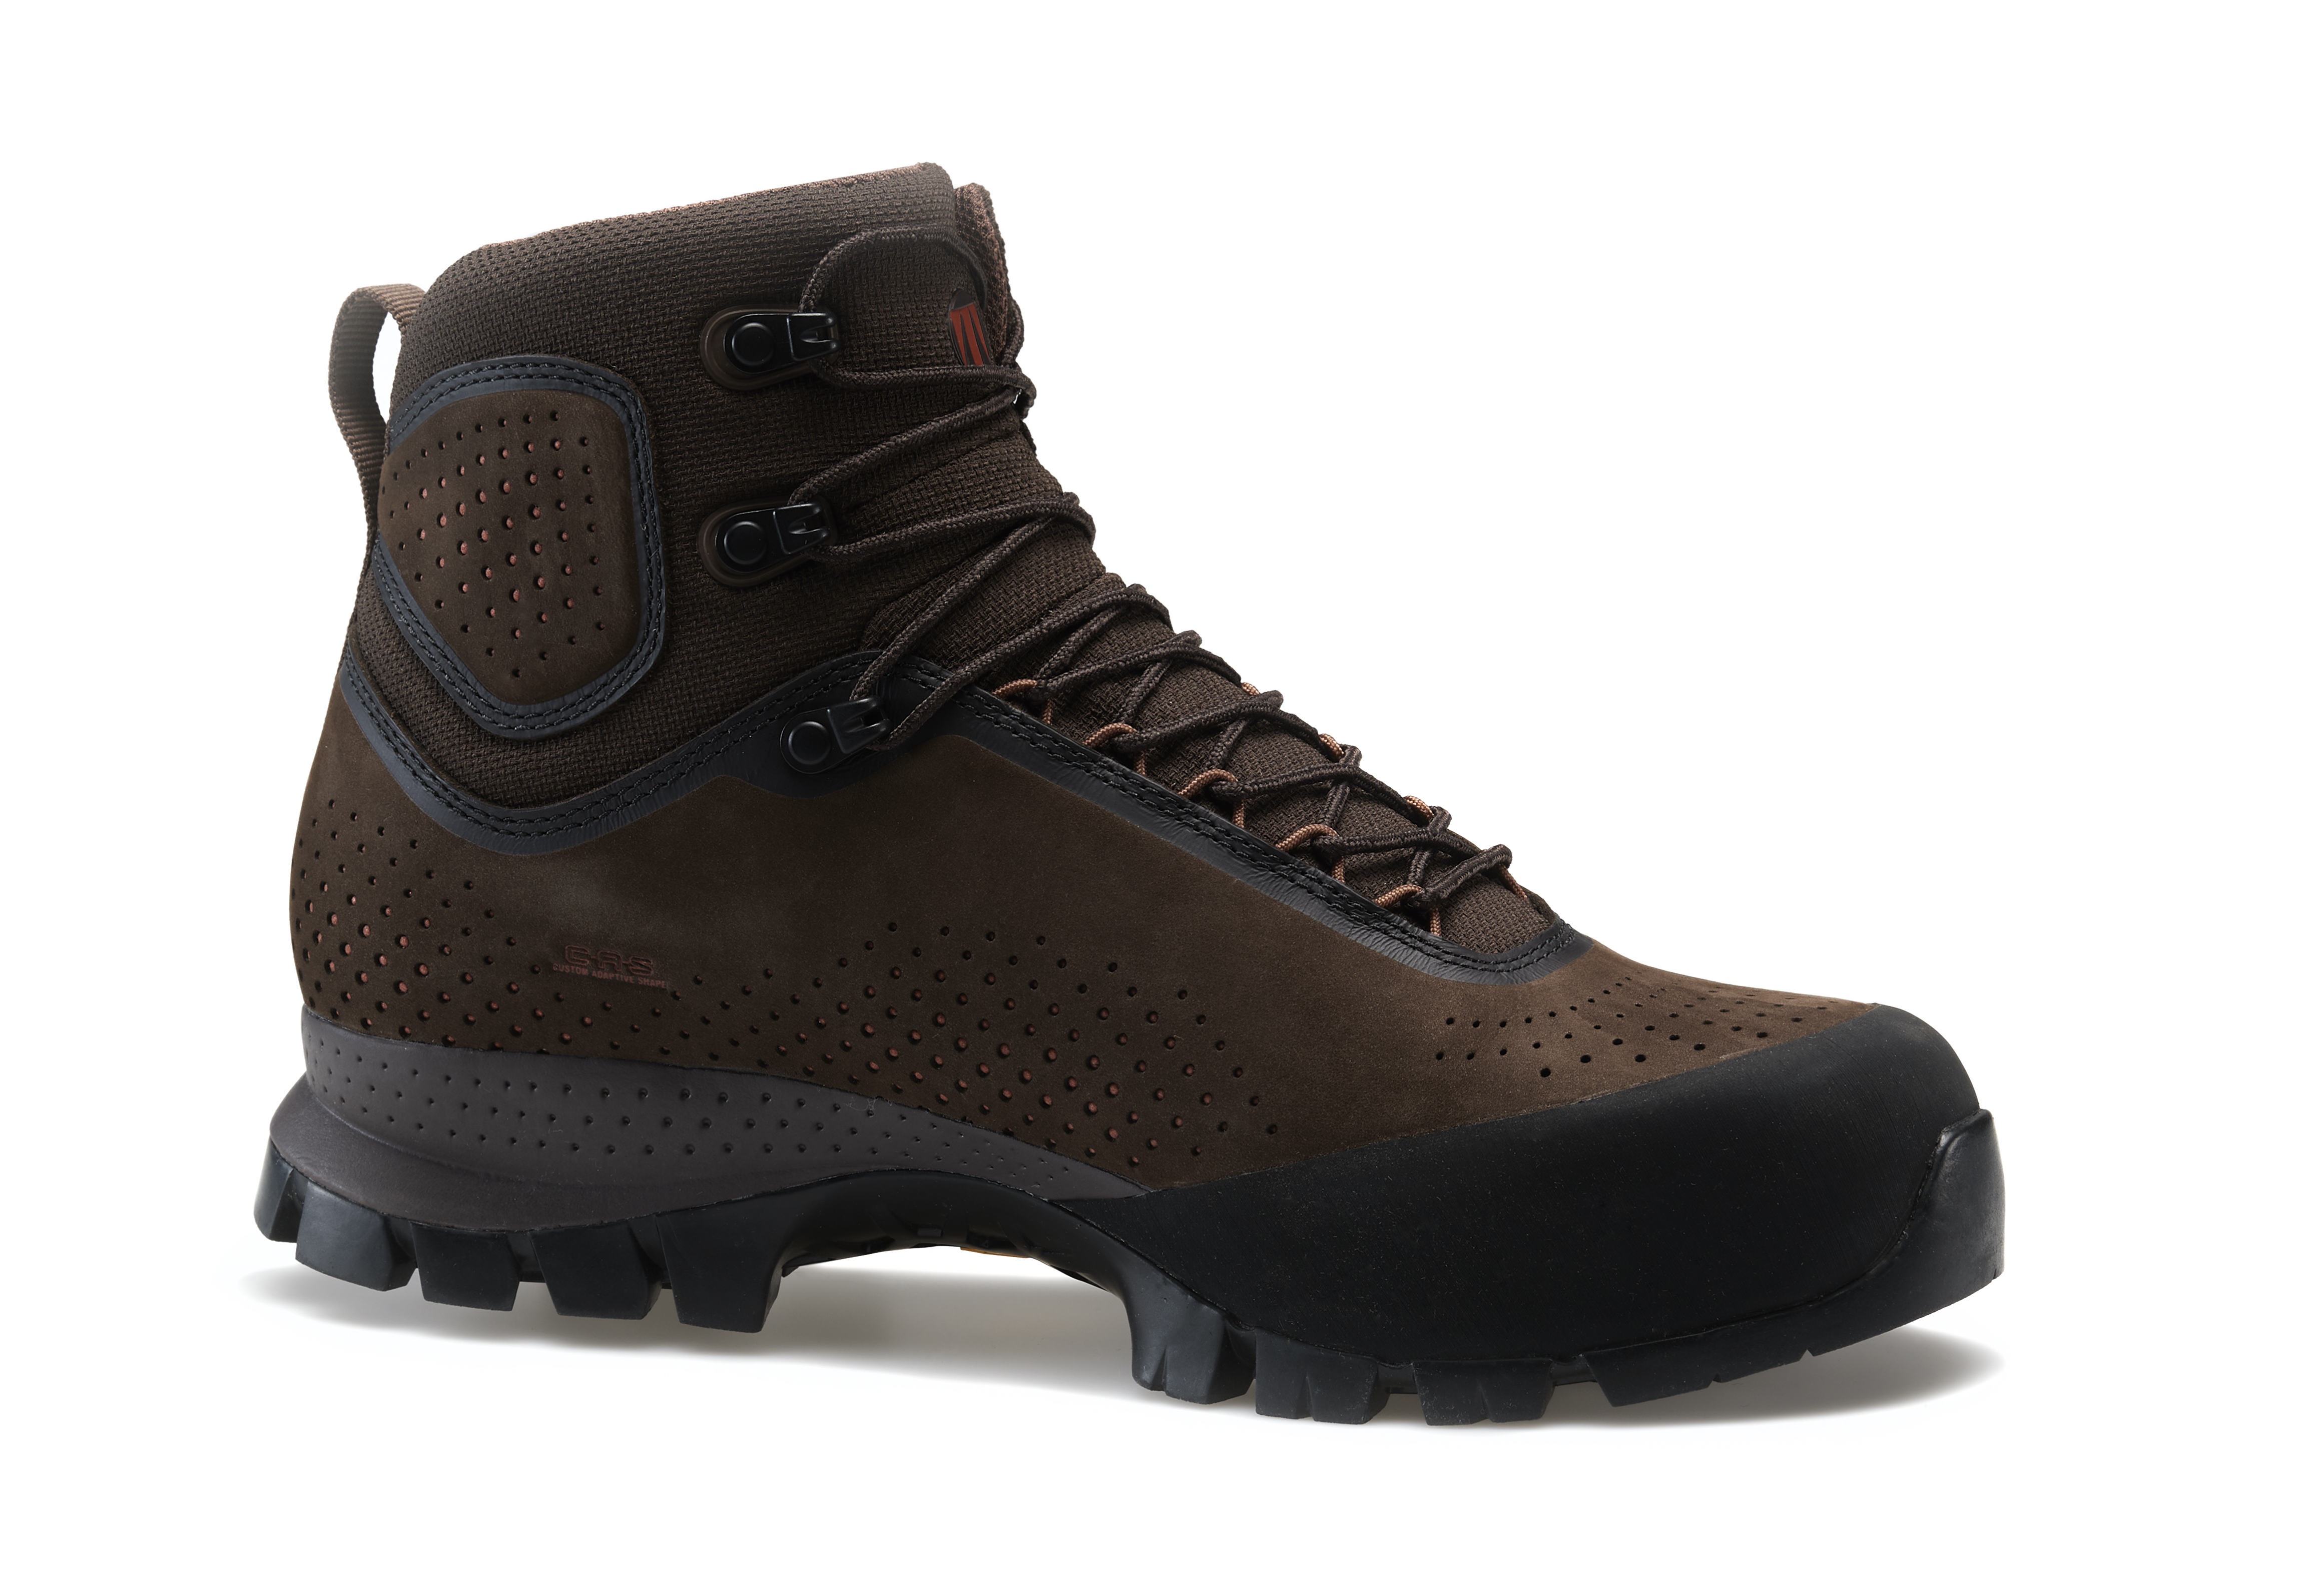 Forge GTX Ms, 022 night tierra/rich laterite